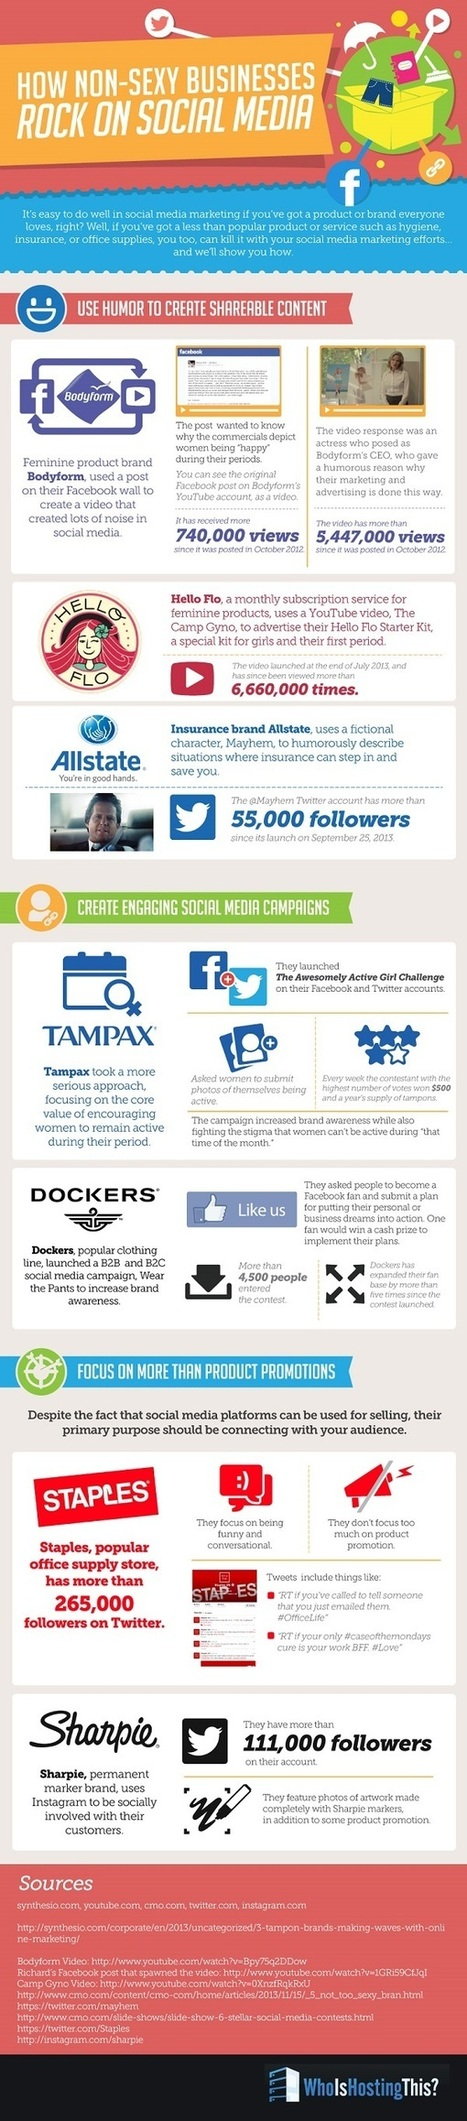 How to Sell Unsexy Products on Social Media [Infographic] | MarketingHits | Scoop.it